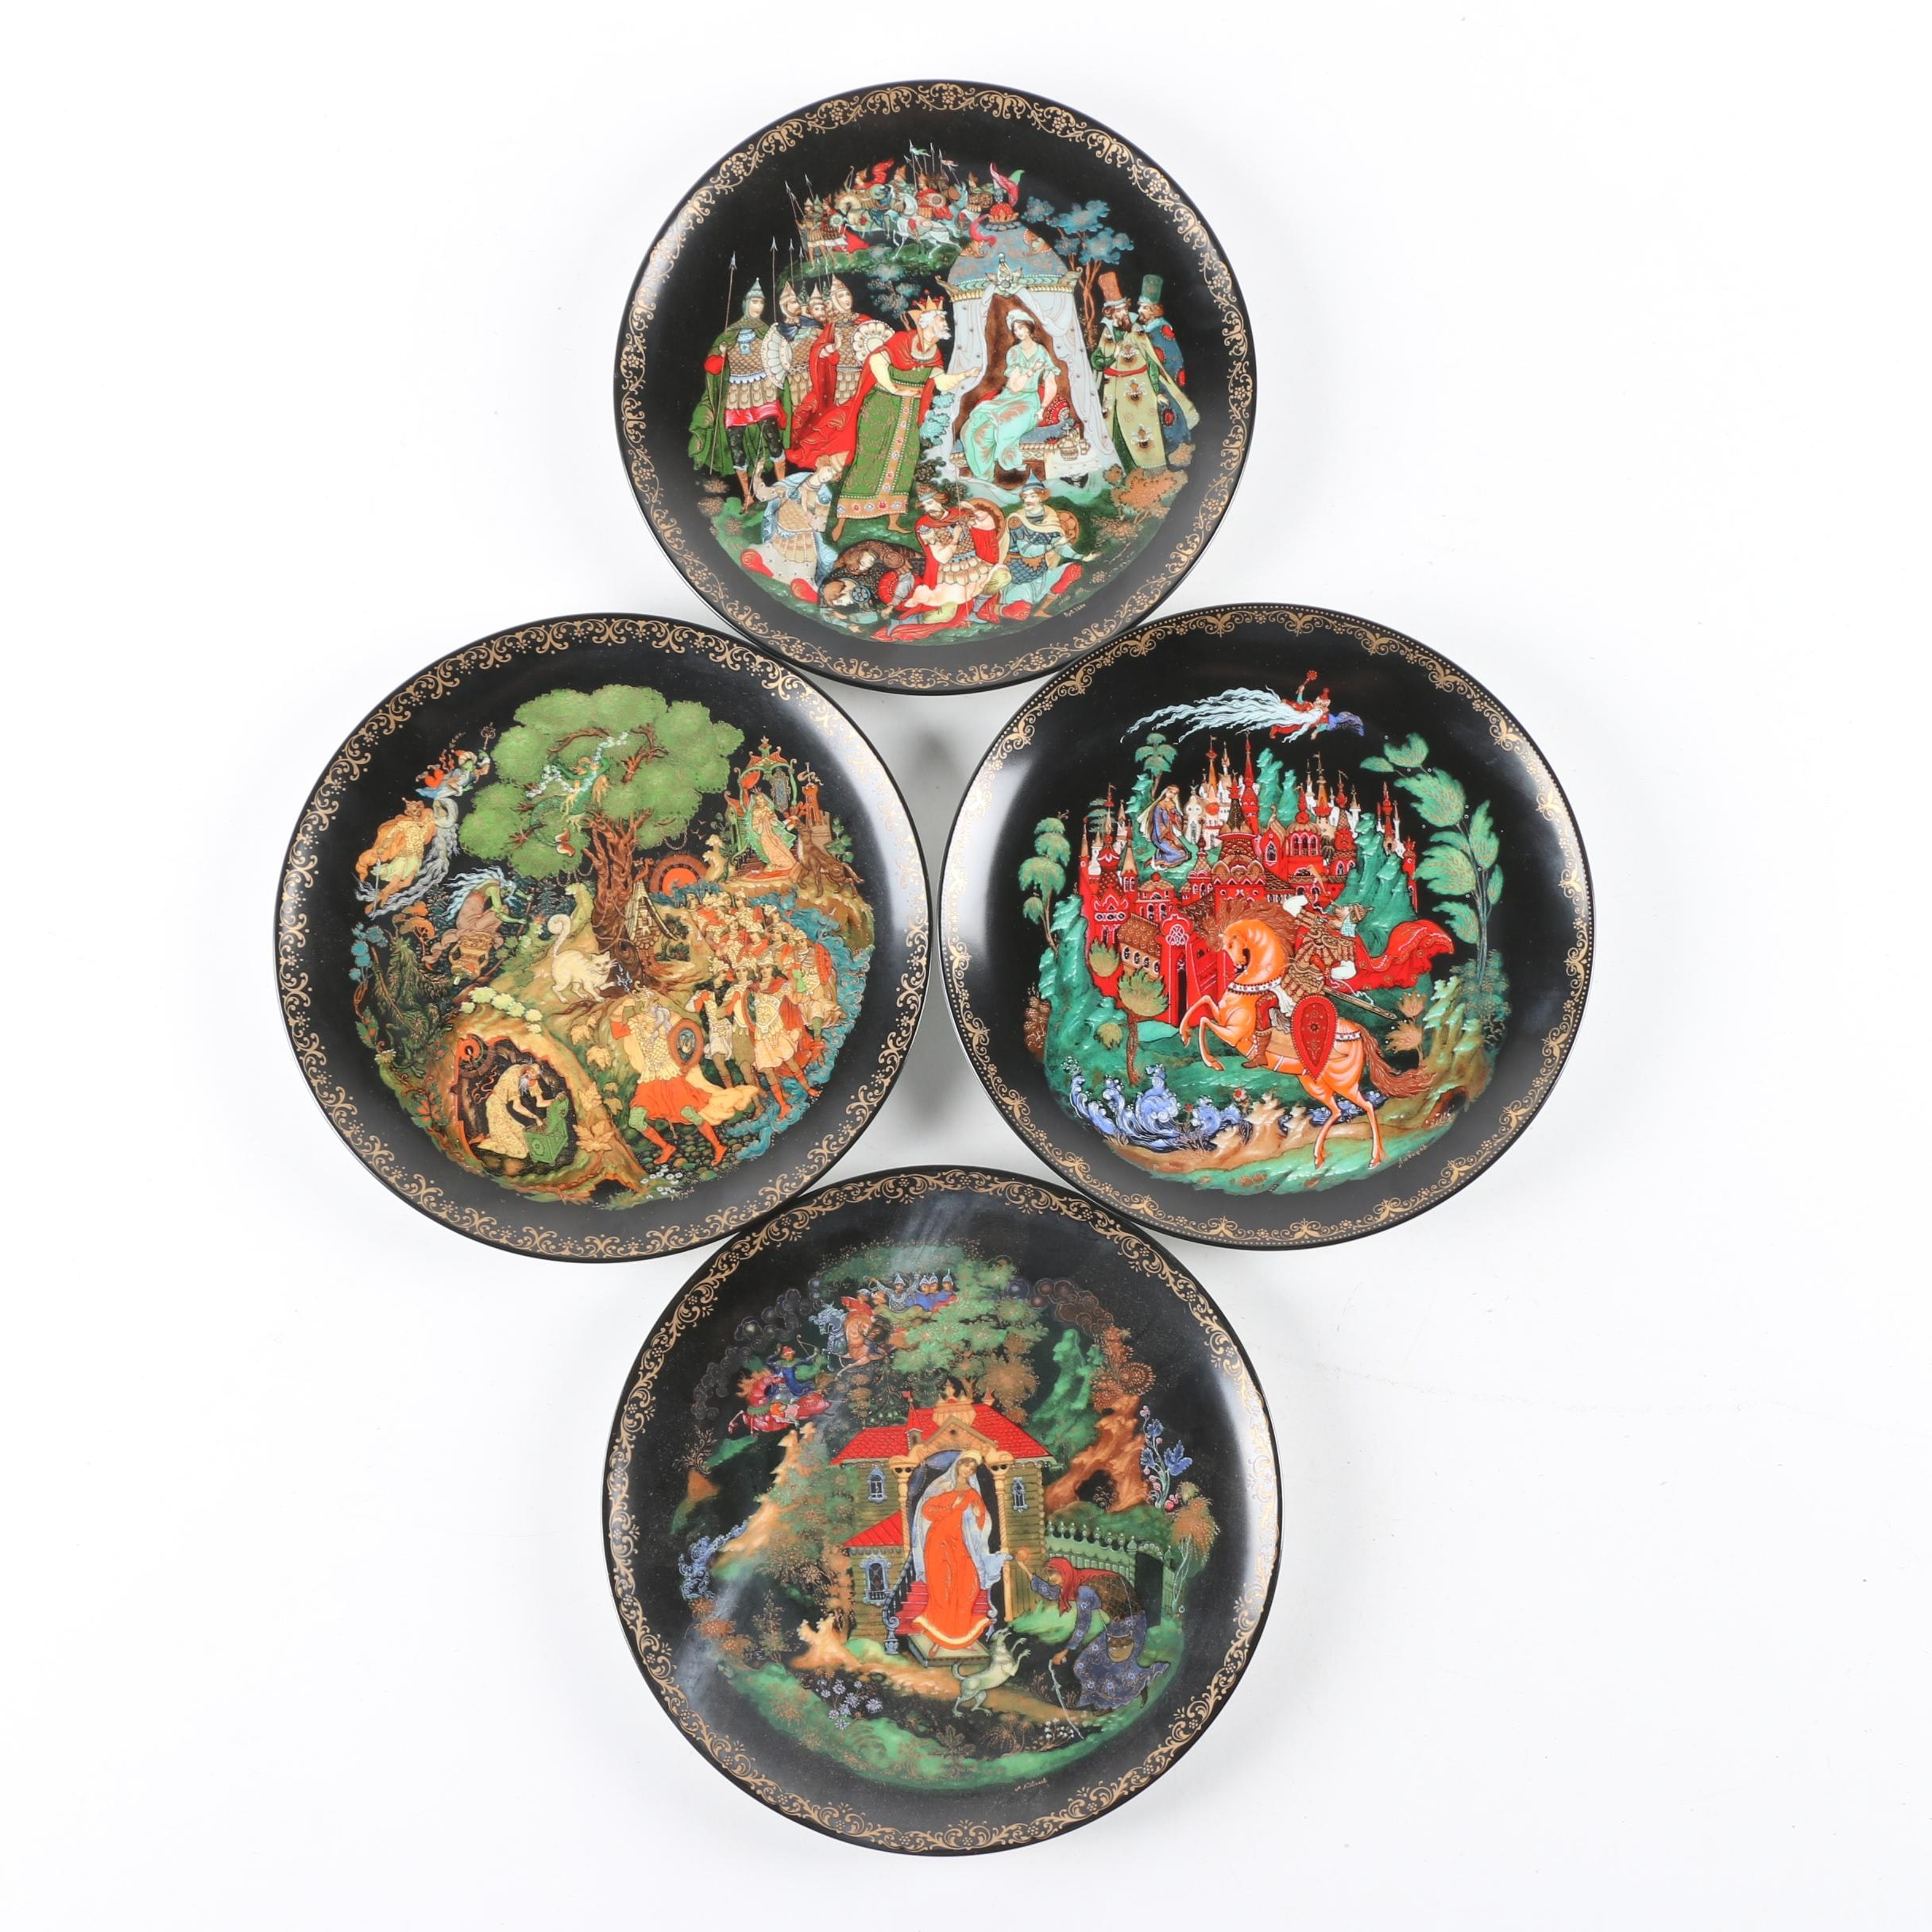 1980s Bradex Russian Folklore Porcelain Collector Plates